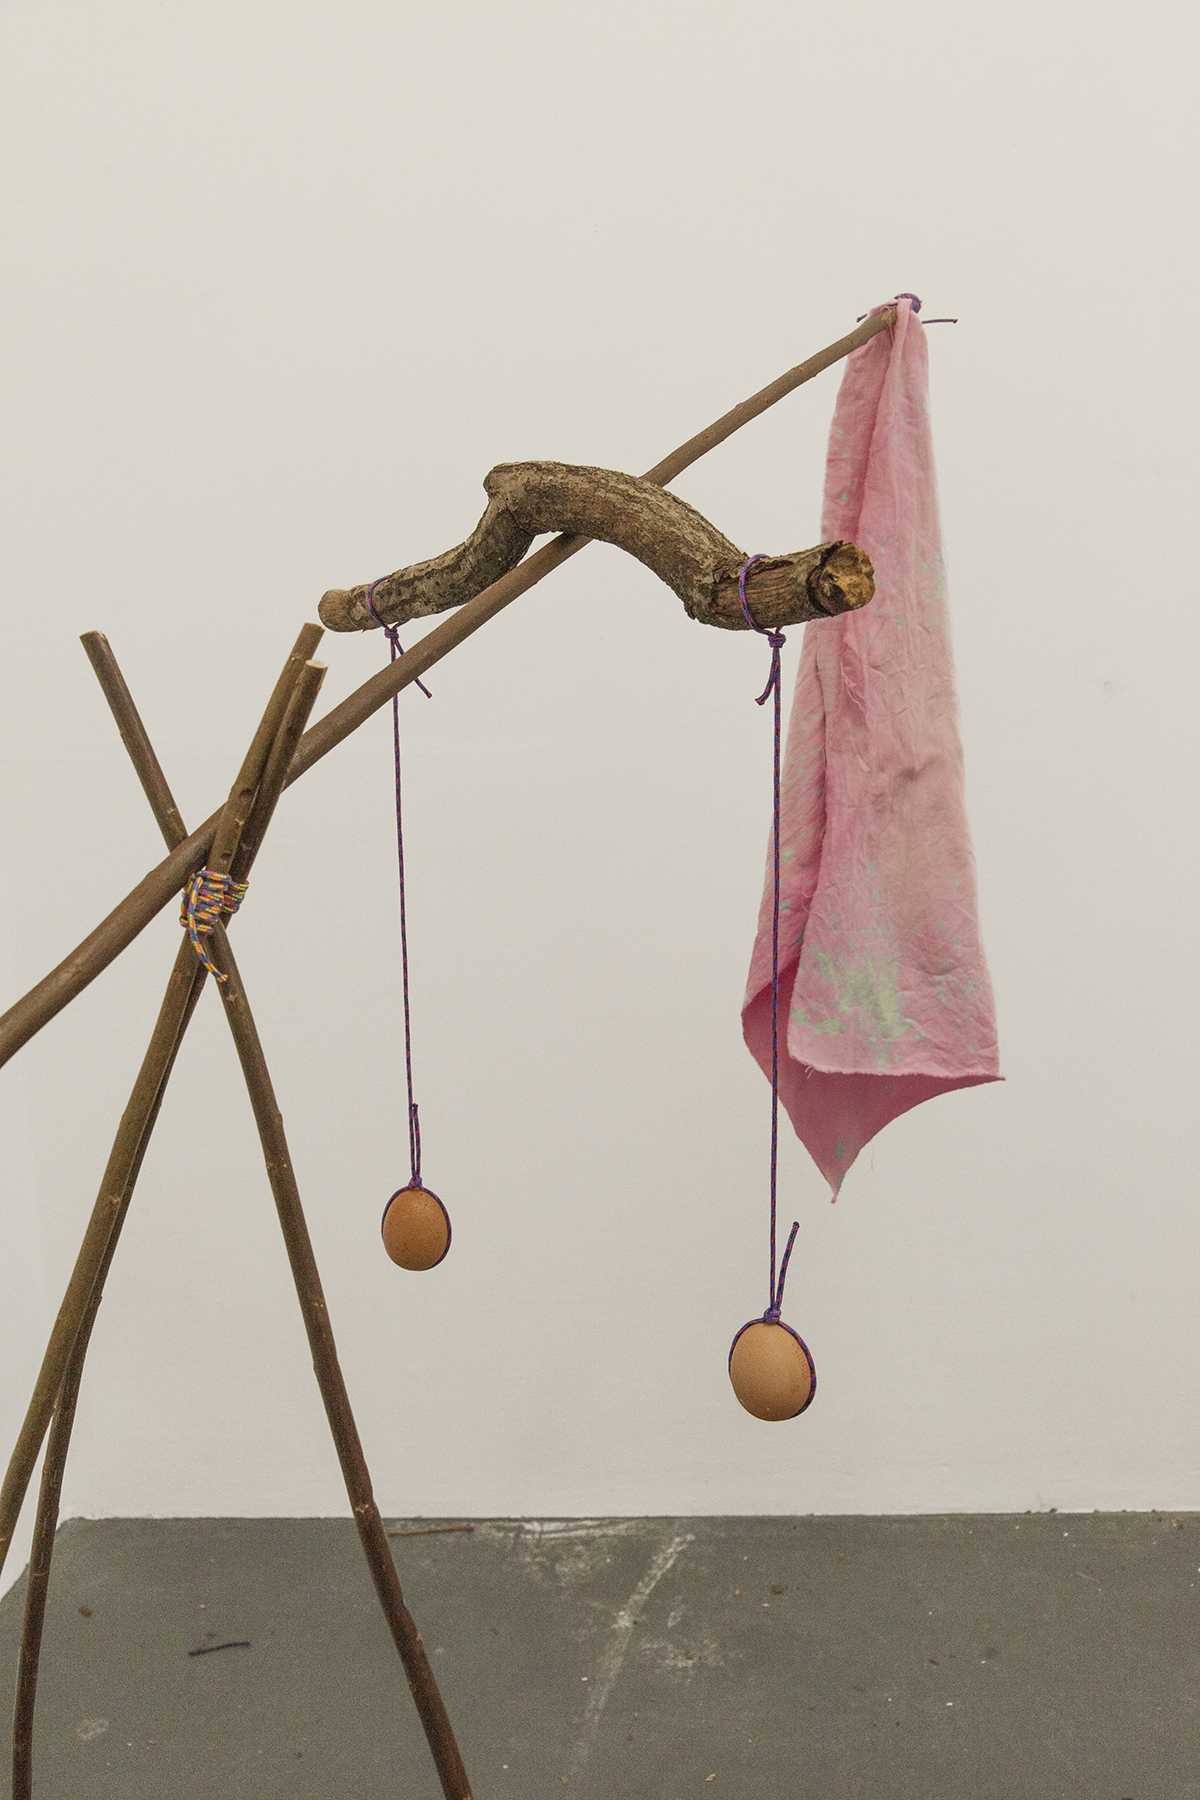 Horse (detail) — Coppiced willow poles, estovers, rope, eggs, stones and cotton dyed with fermented red cabbage, lemon juice and bicarbonate of soda.